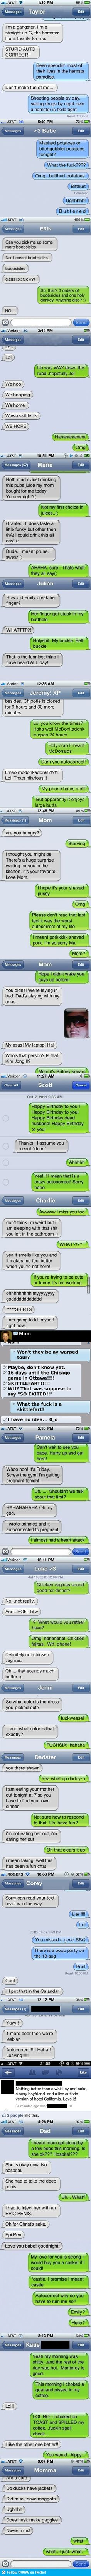 Funniest AutoCorrects Of 2012. lol'd the entire time.